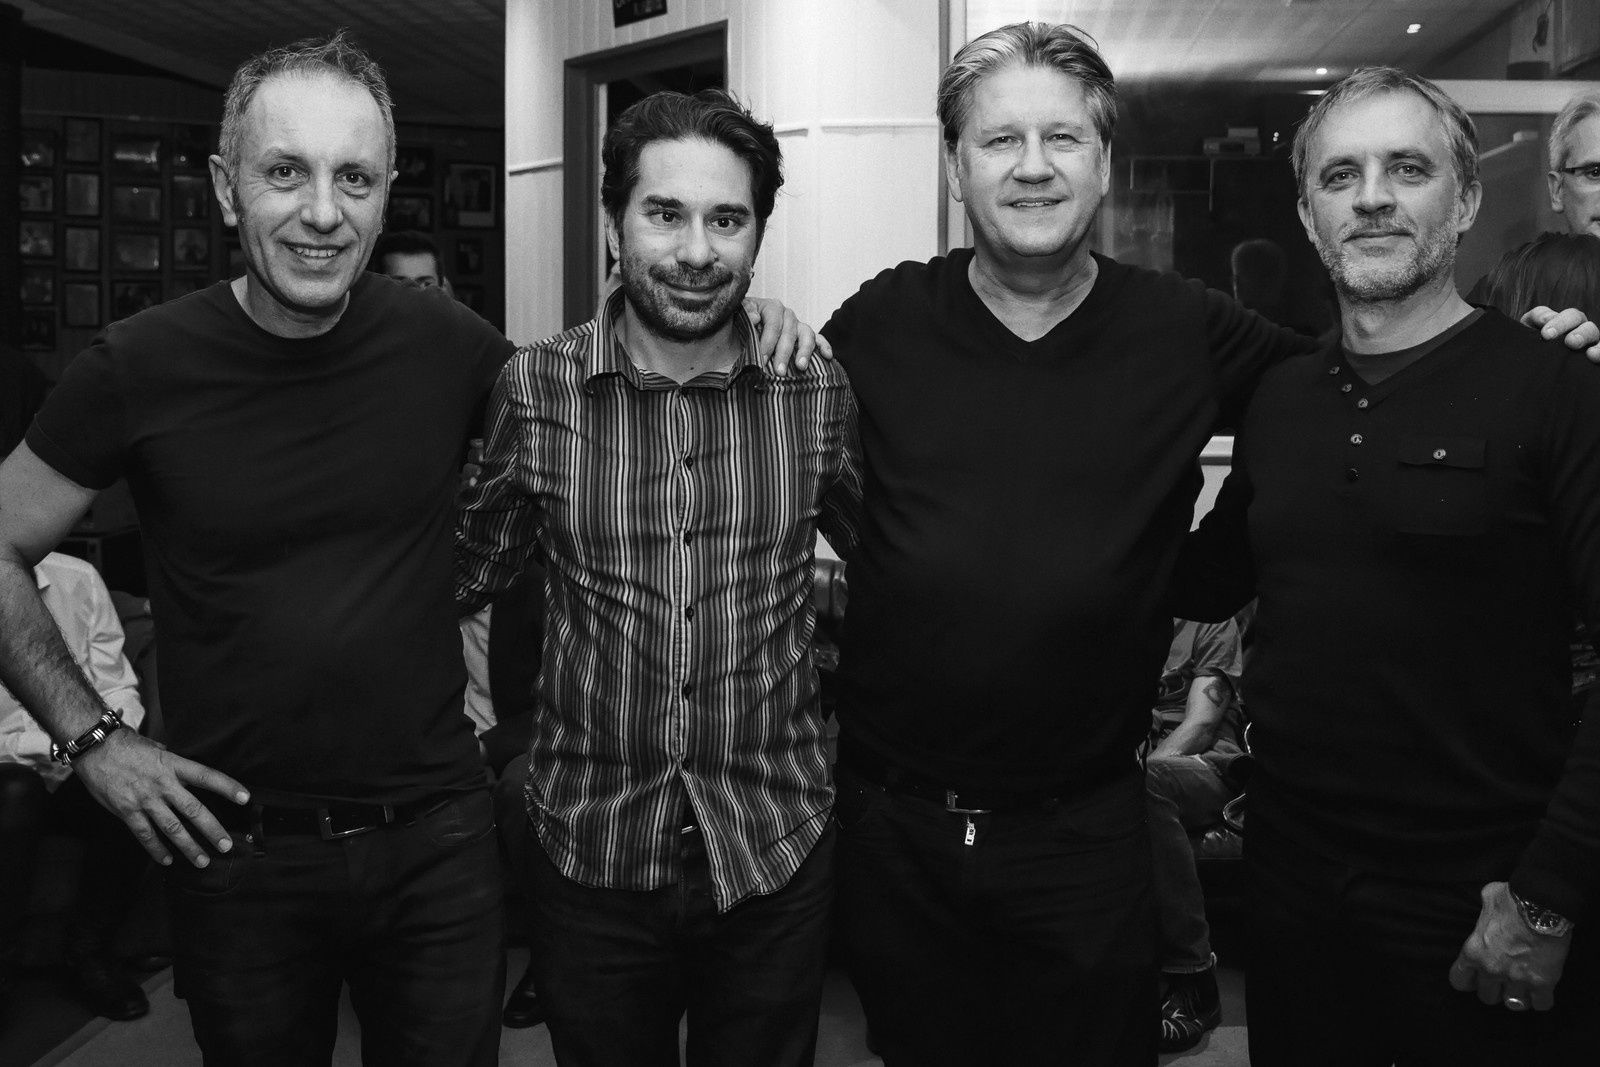 Christophe Gauthier, Julien Tekeyan, Cyril Morin, William Lecomte. Crédit : Benoît Billard